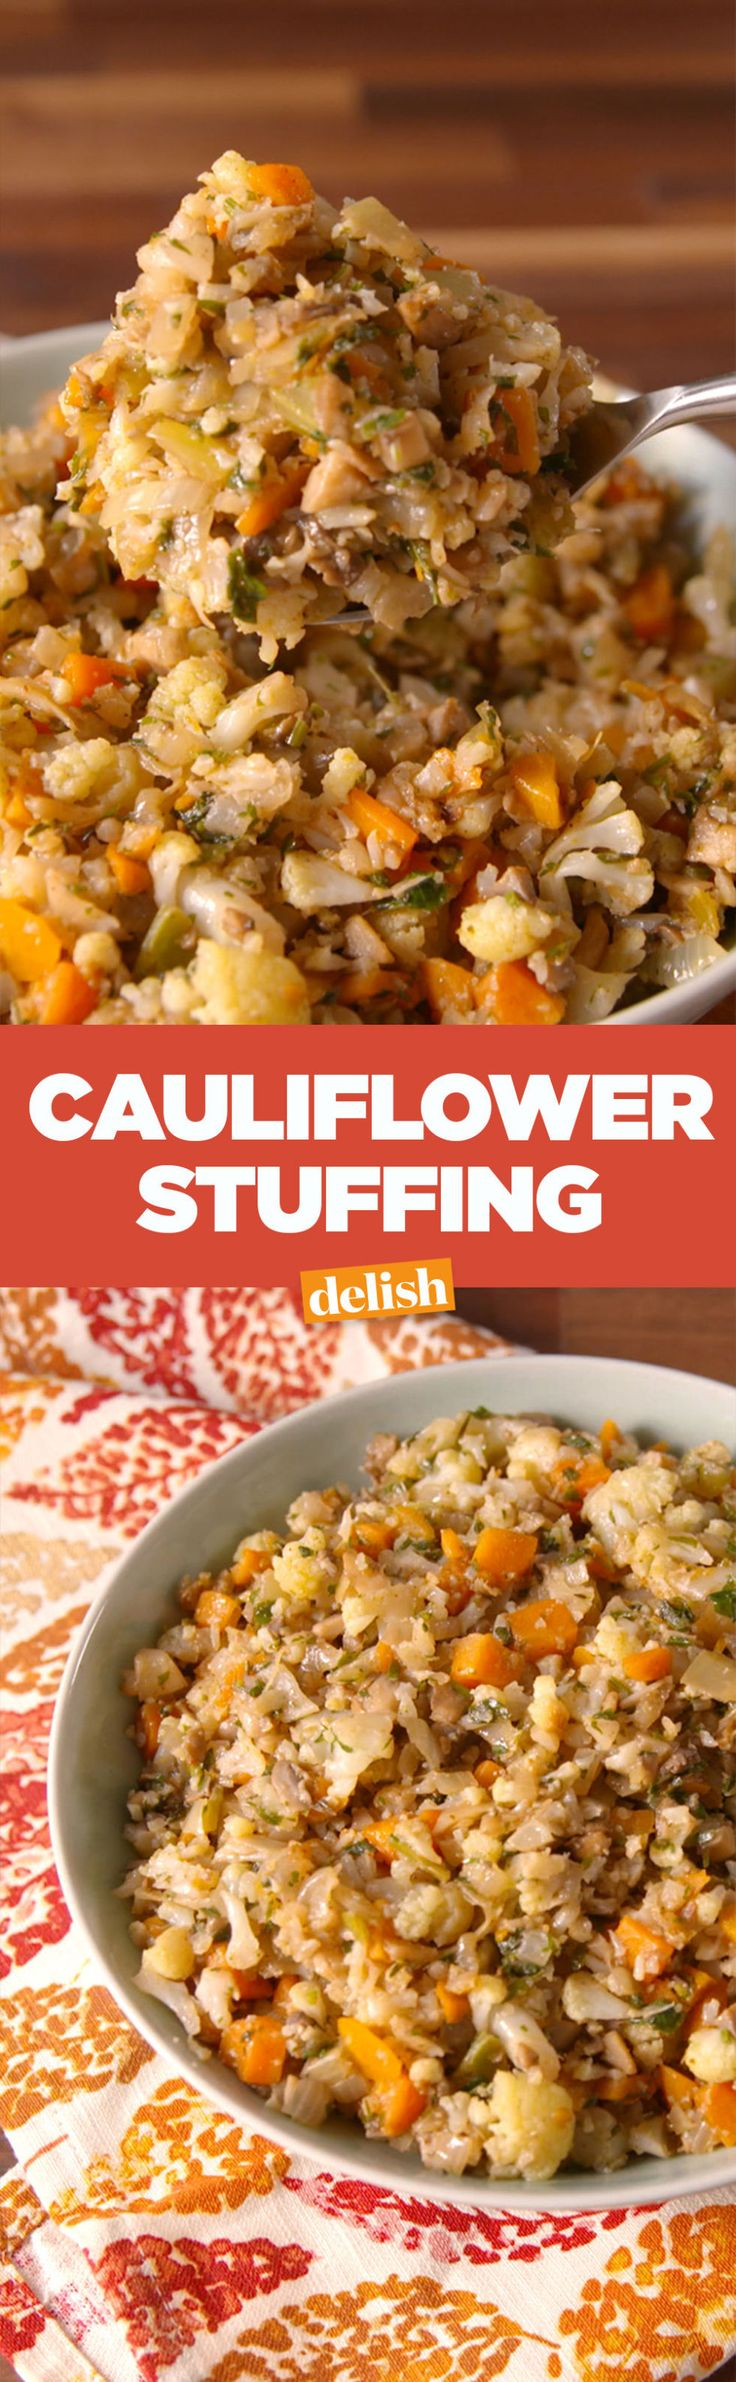 Cauliflower Stuffing Is the Low-Carb Side Everyone Wants This Thanksgiving